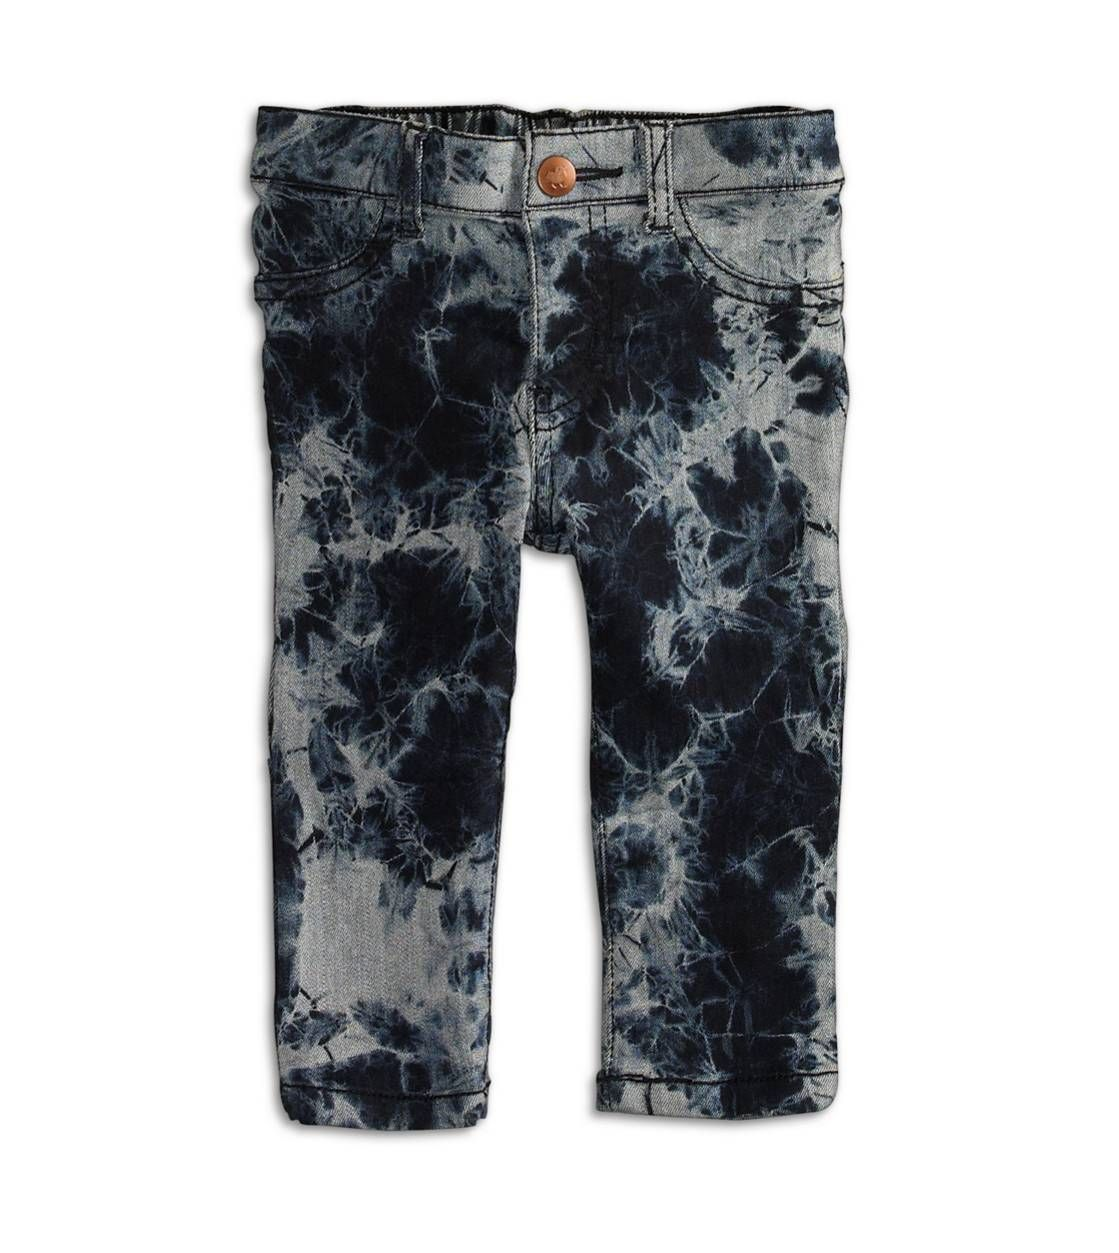 77 Girly Marbled Jegging in Faded Bleach Wash.